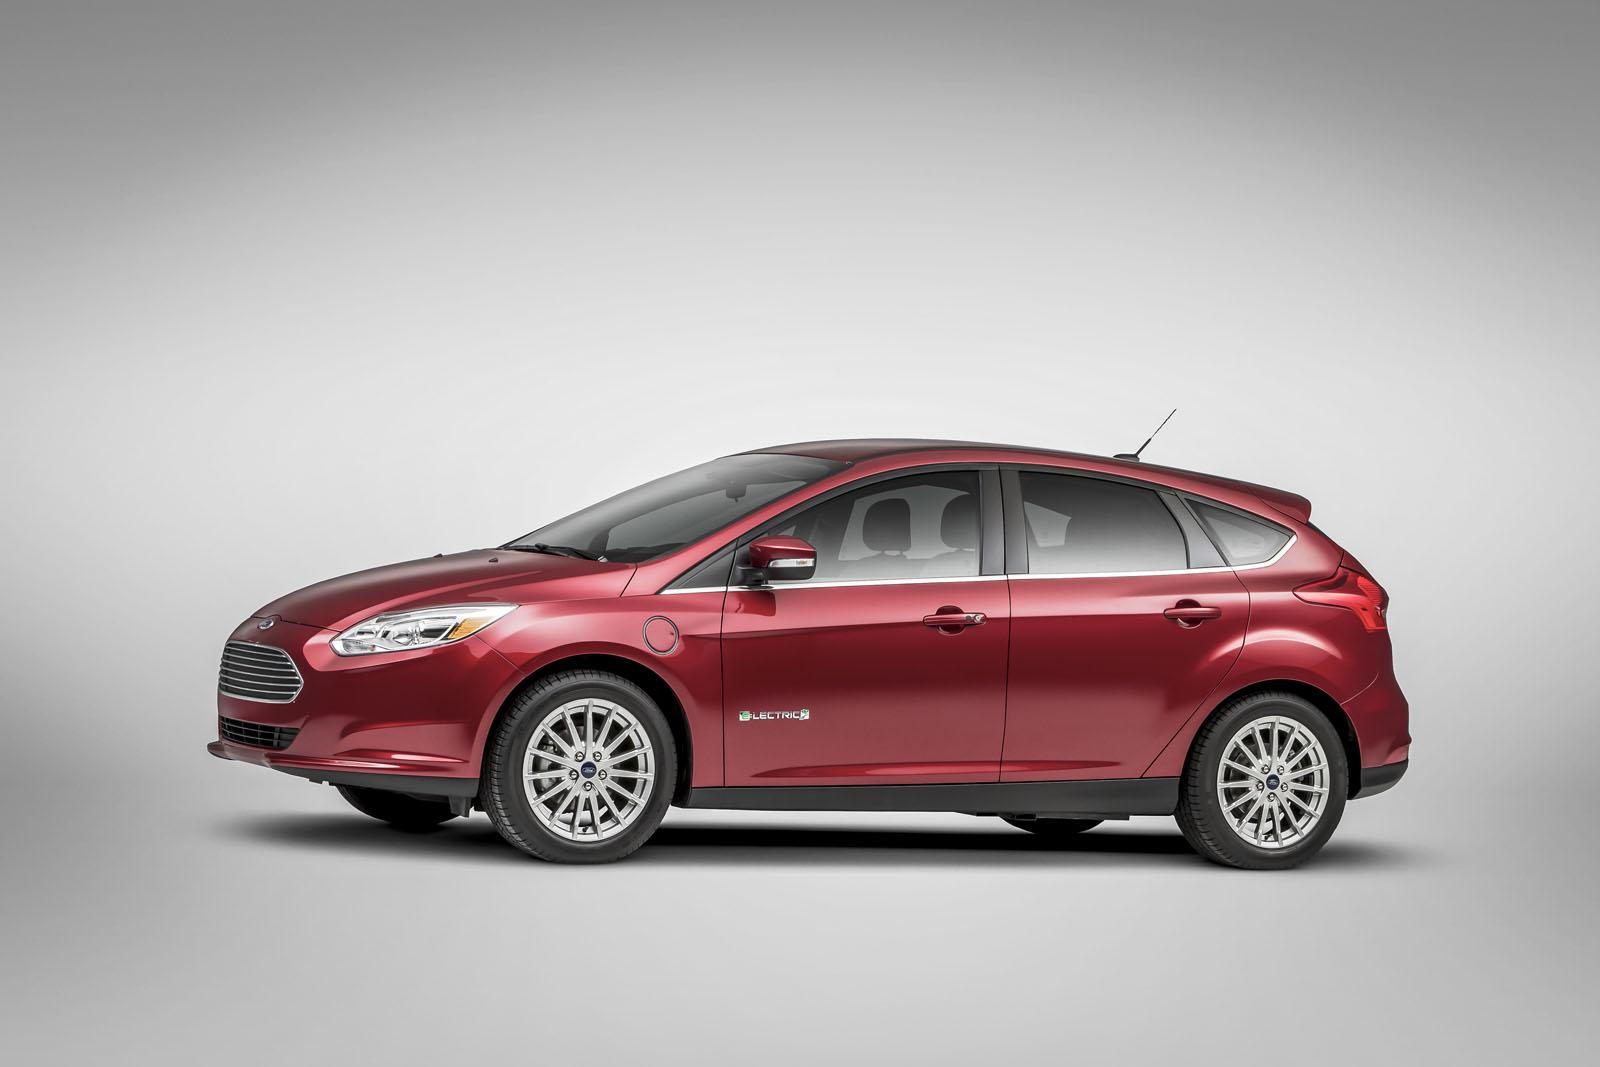 new ford focus electric confirmed to be 6 000 cheaper than predecessor autoevolution. Black Bedroom Furniture Sets. Home Design Ideas